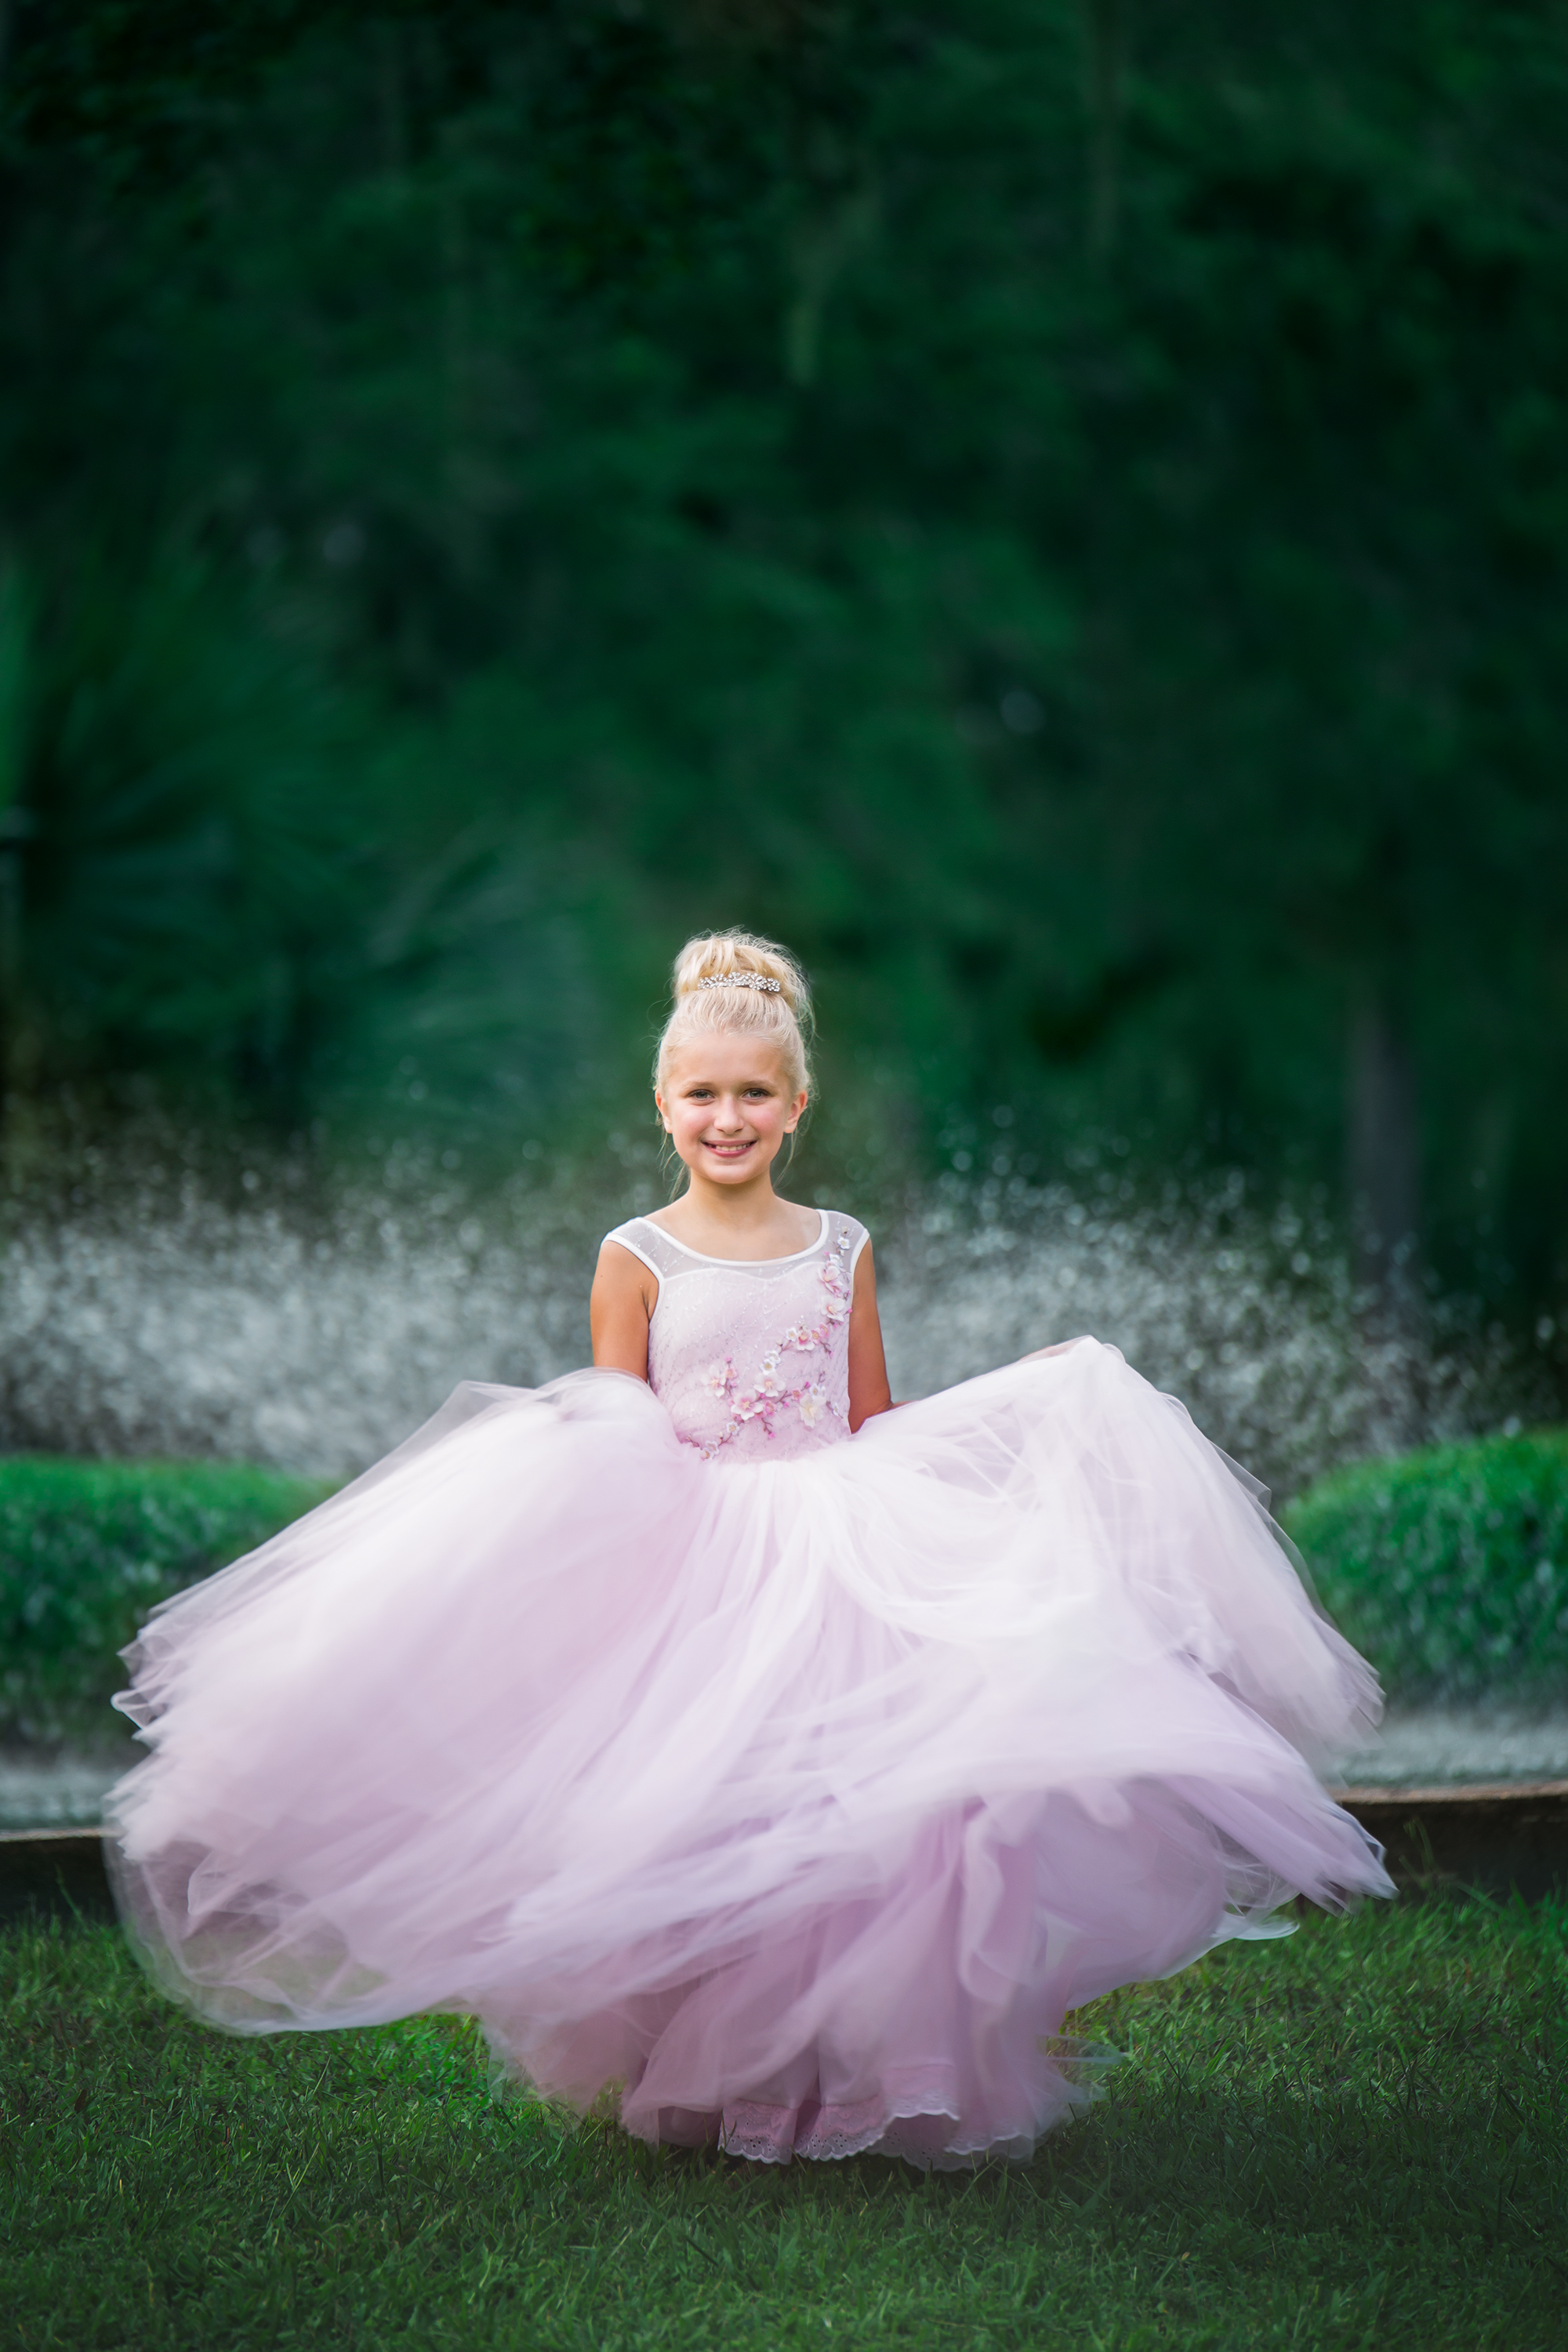 - Every Princess needs to twirl for her photo shoot.